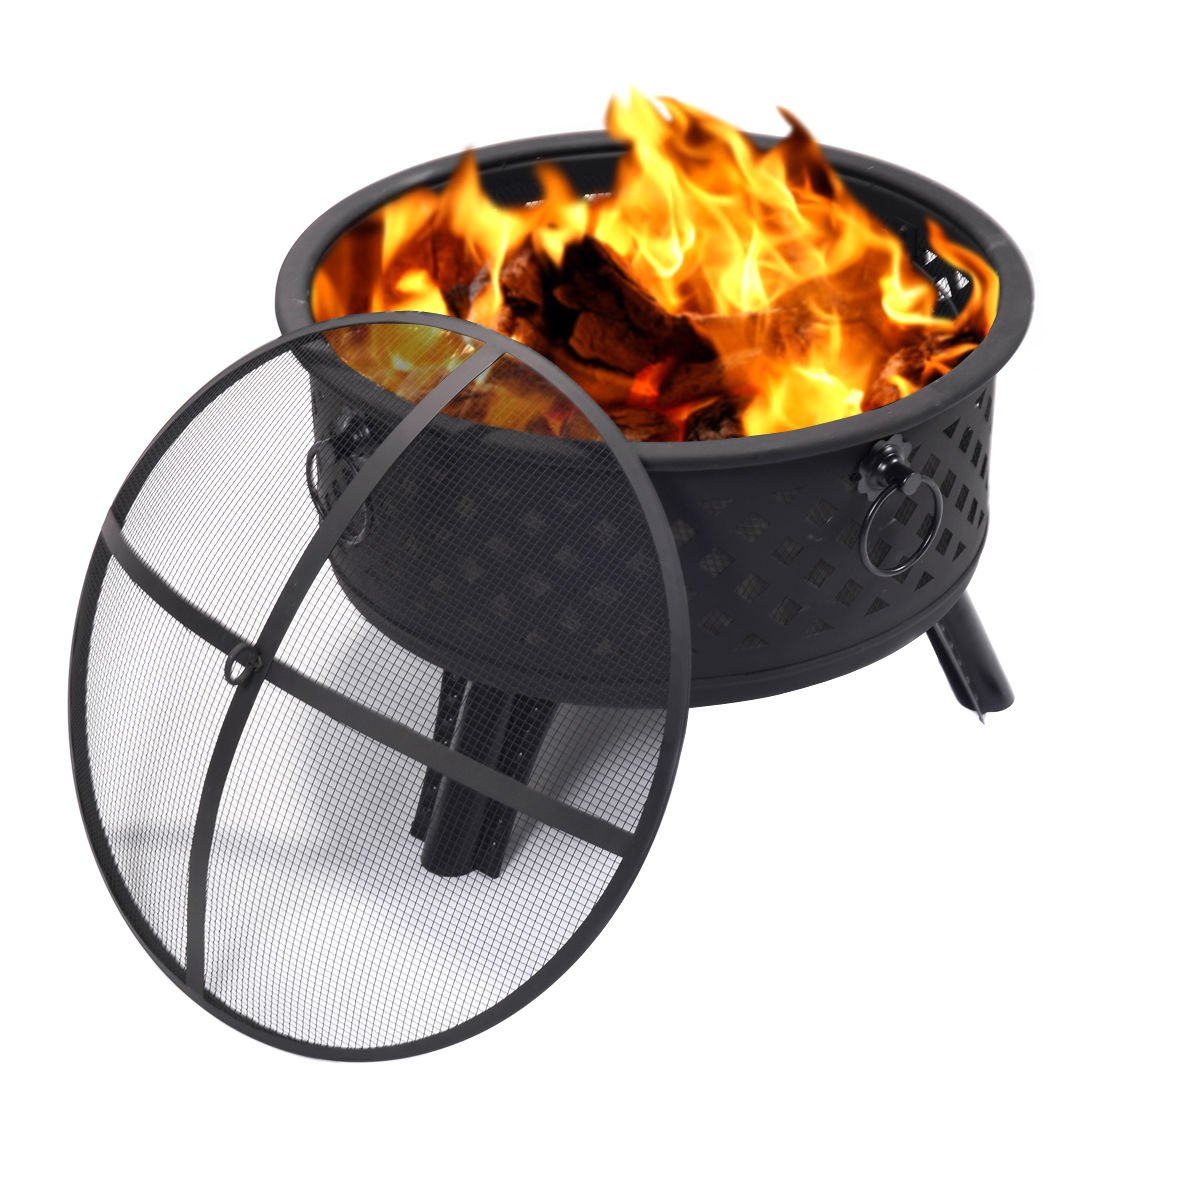 Metal Round Firepit Patio Garden Stove Outdoor Brazier With Poker 26 Inch